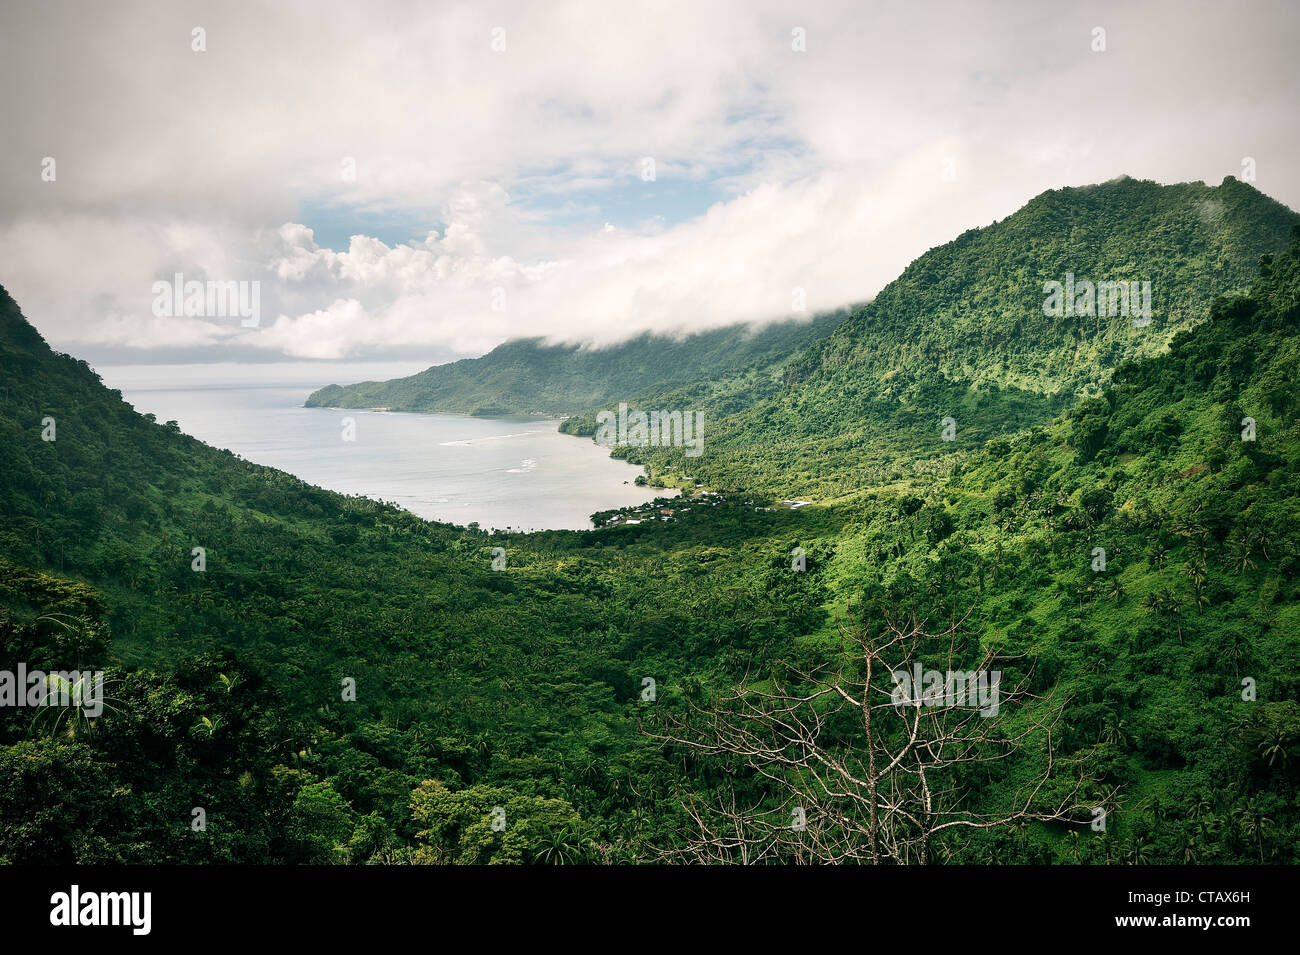 View at bay and tropical mountains with rainforest, Upolu, Samoa, Southern Pacific - Stock Image